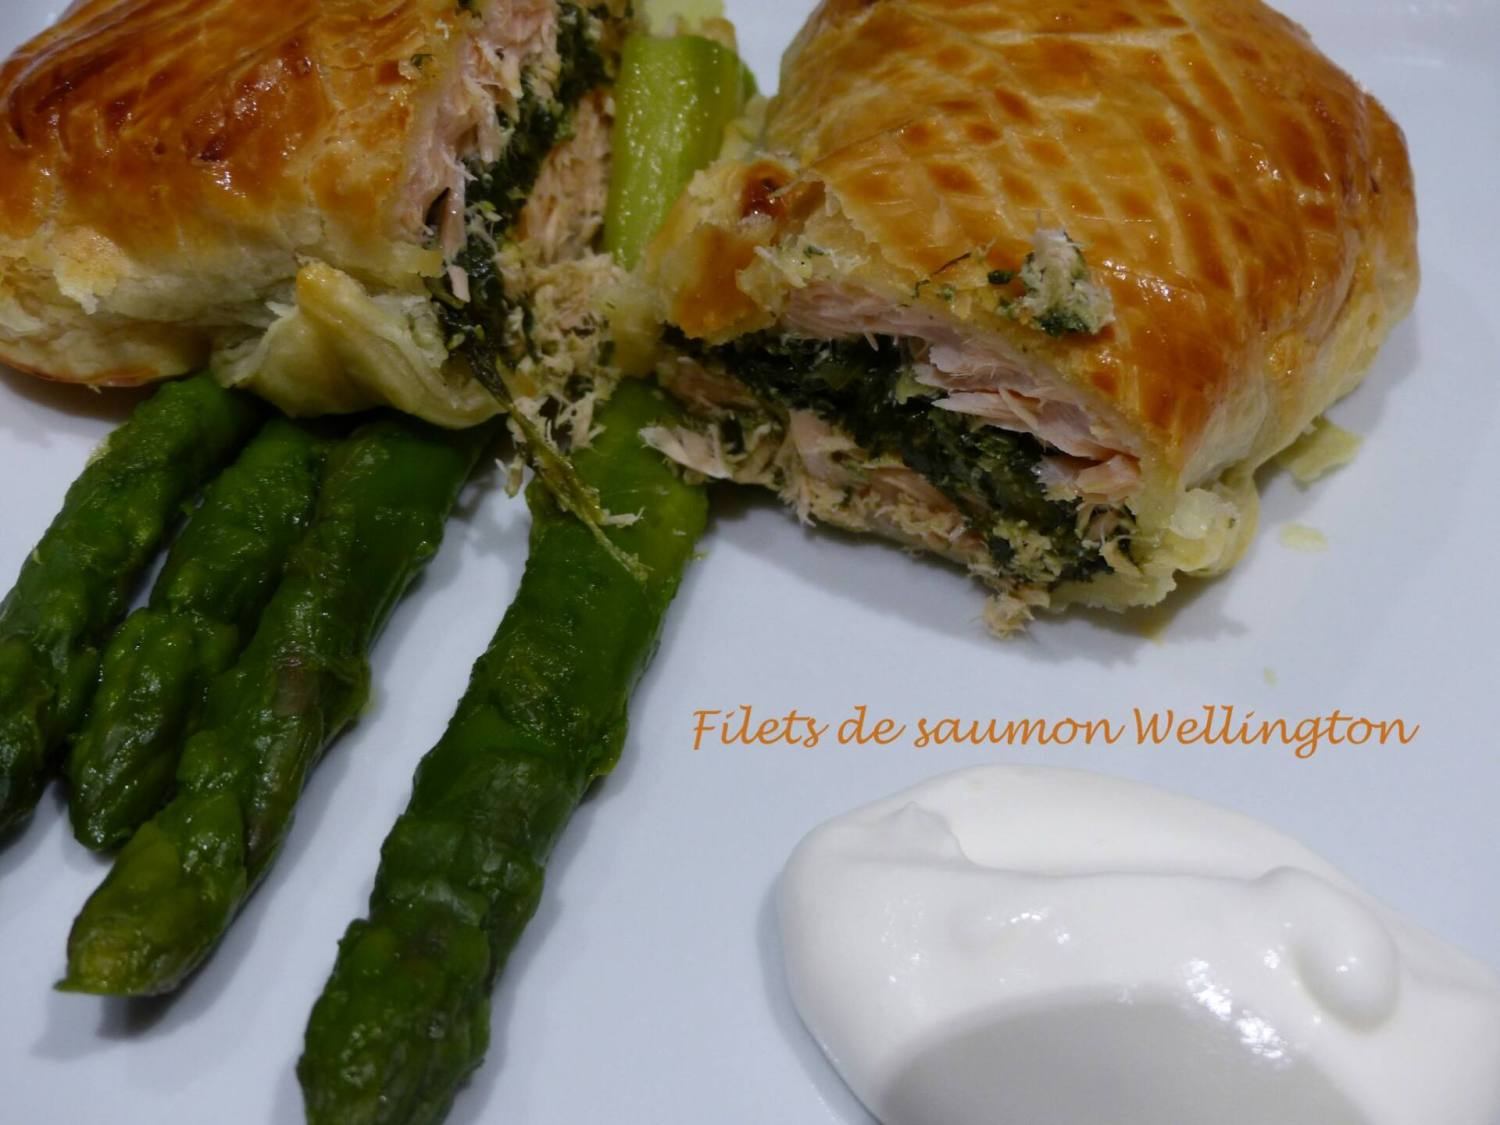 Filets de saumon Wellington P1150125 R